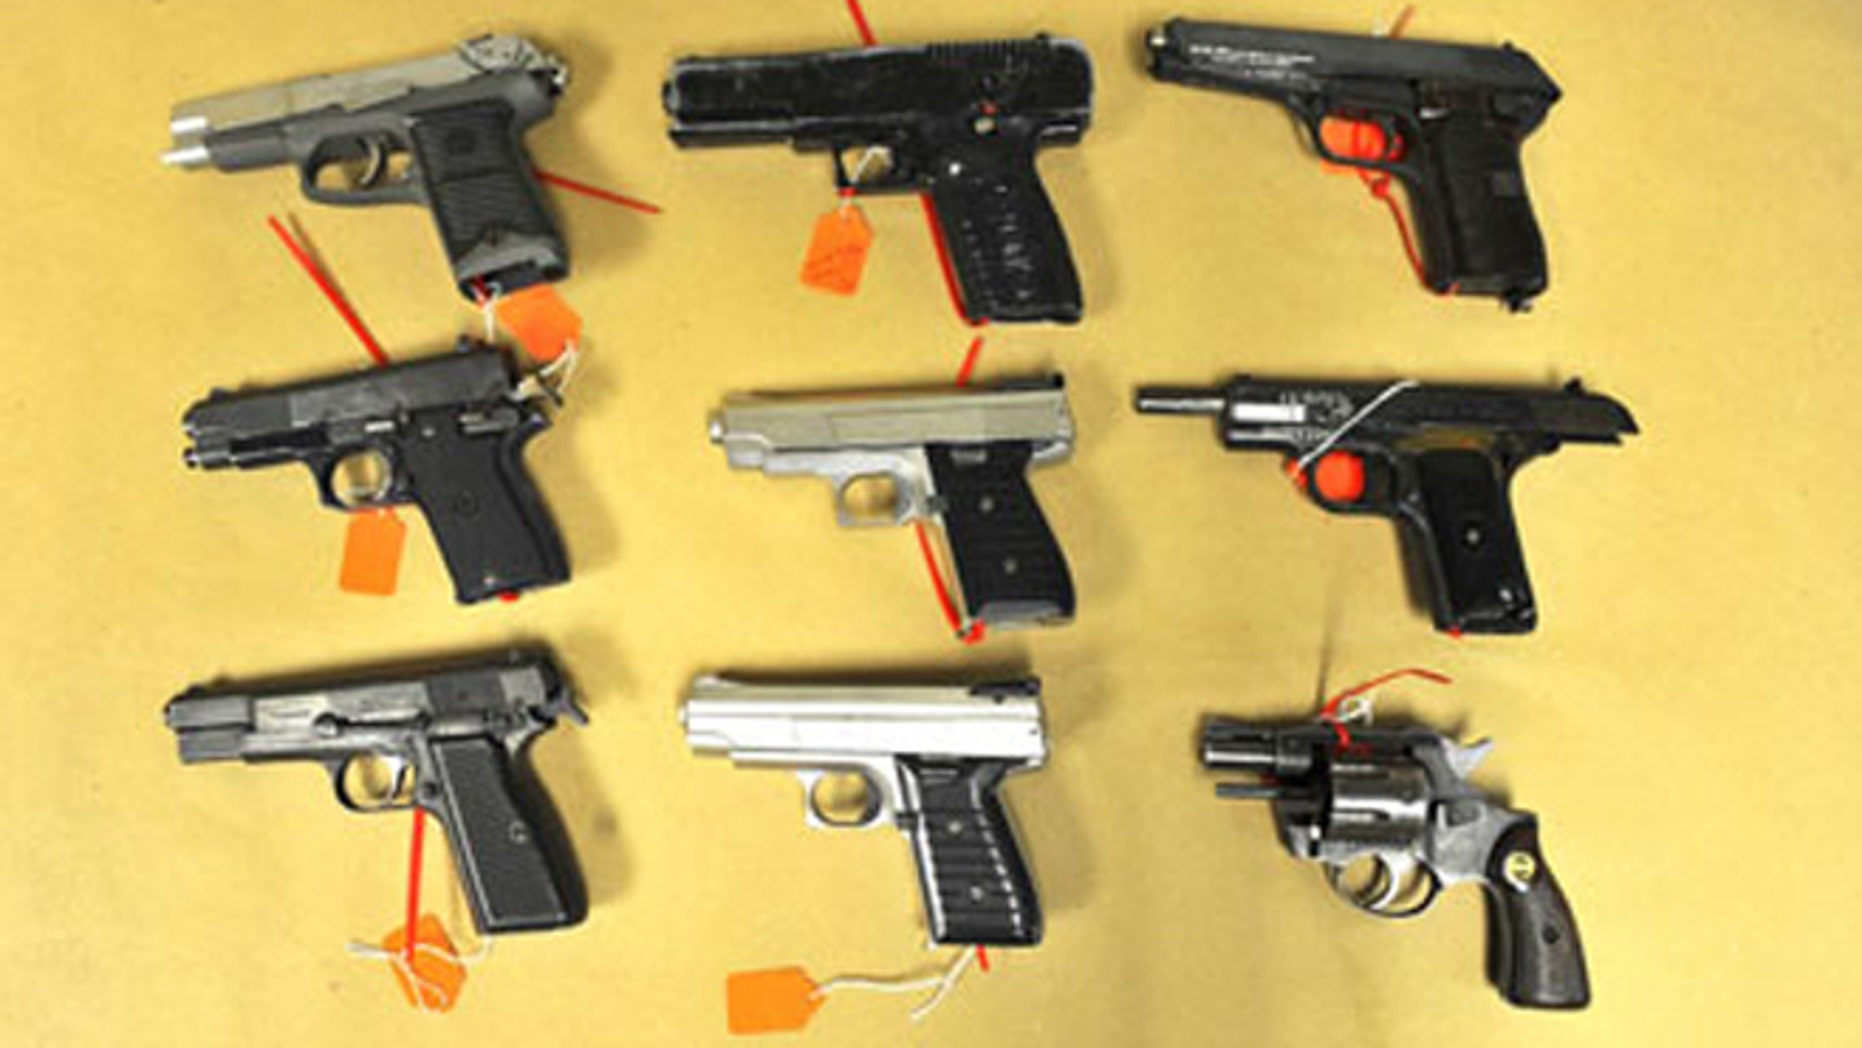 FILE 2012: Buffalo police confiscated nine illegal handguns in connection with a gun trafficking operation that stretched from the Decatur, Georgia area to Buffalo. The city has been focused on reducing the number of illegal guns on the street.